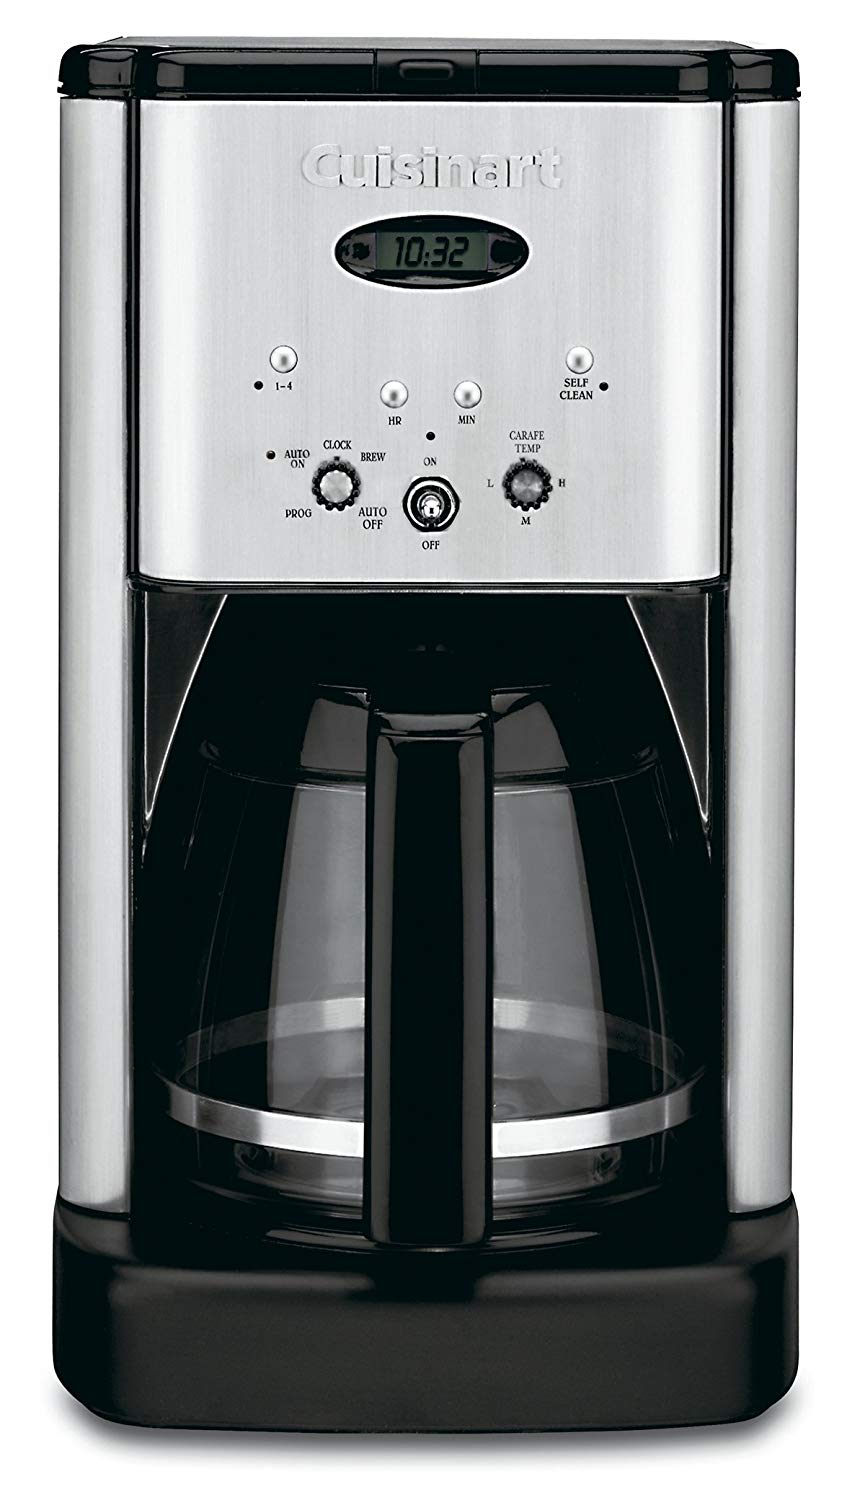 DC1200 stainless steel